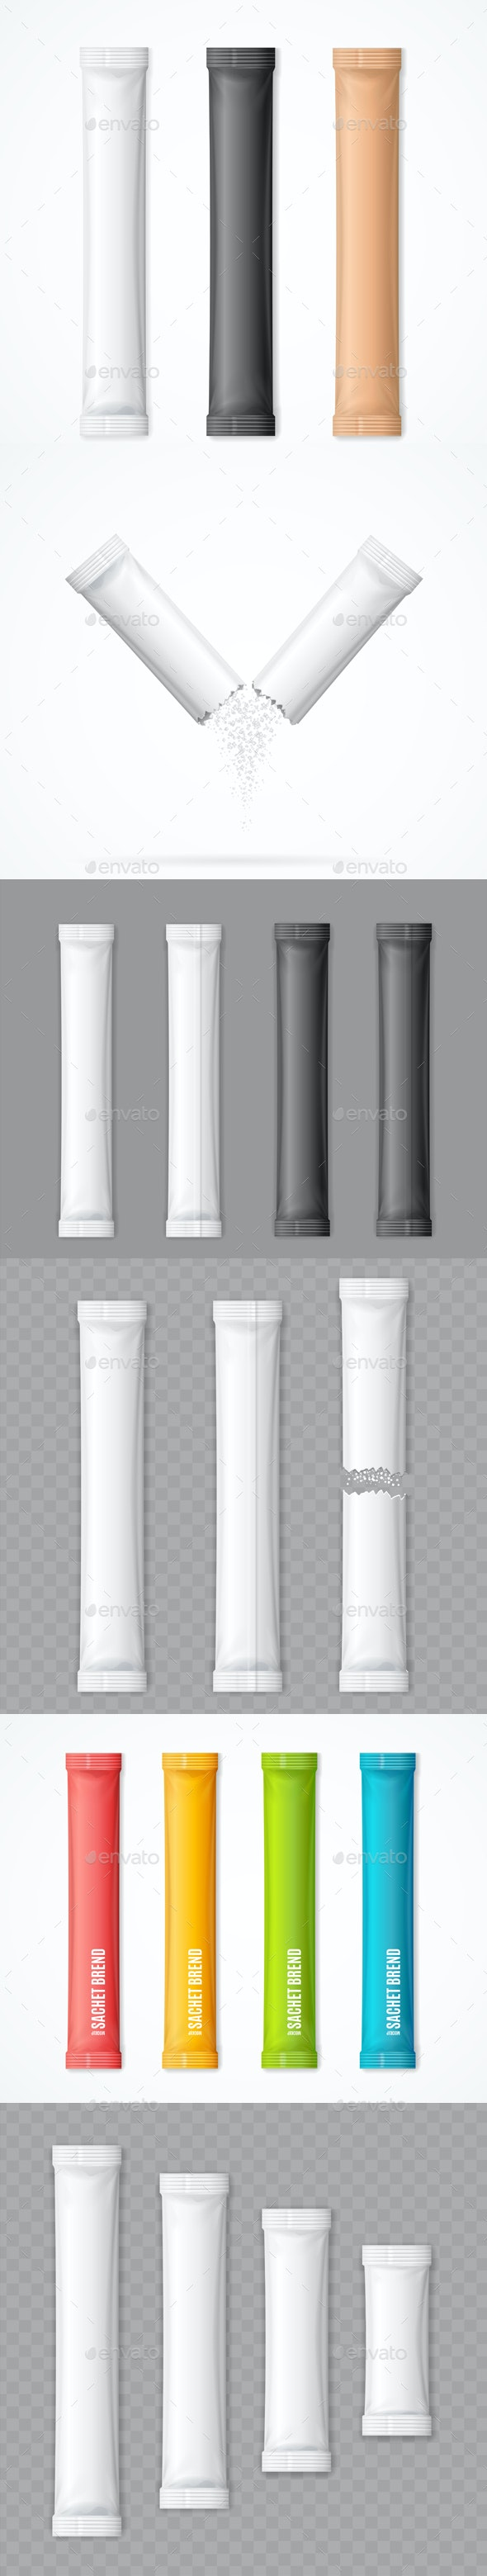 Realistic Detailed Matte Sachet Stick Set - Man-made Objects Objects